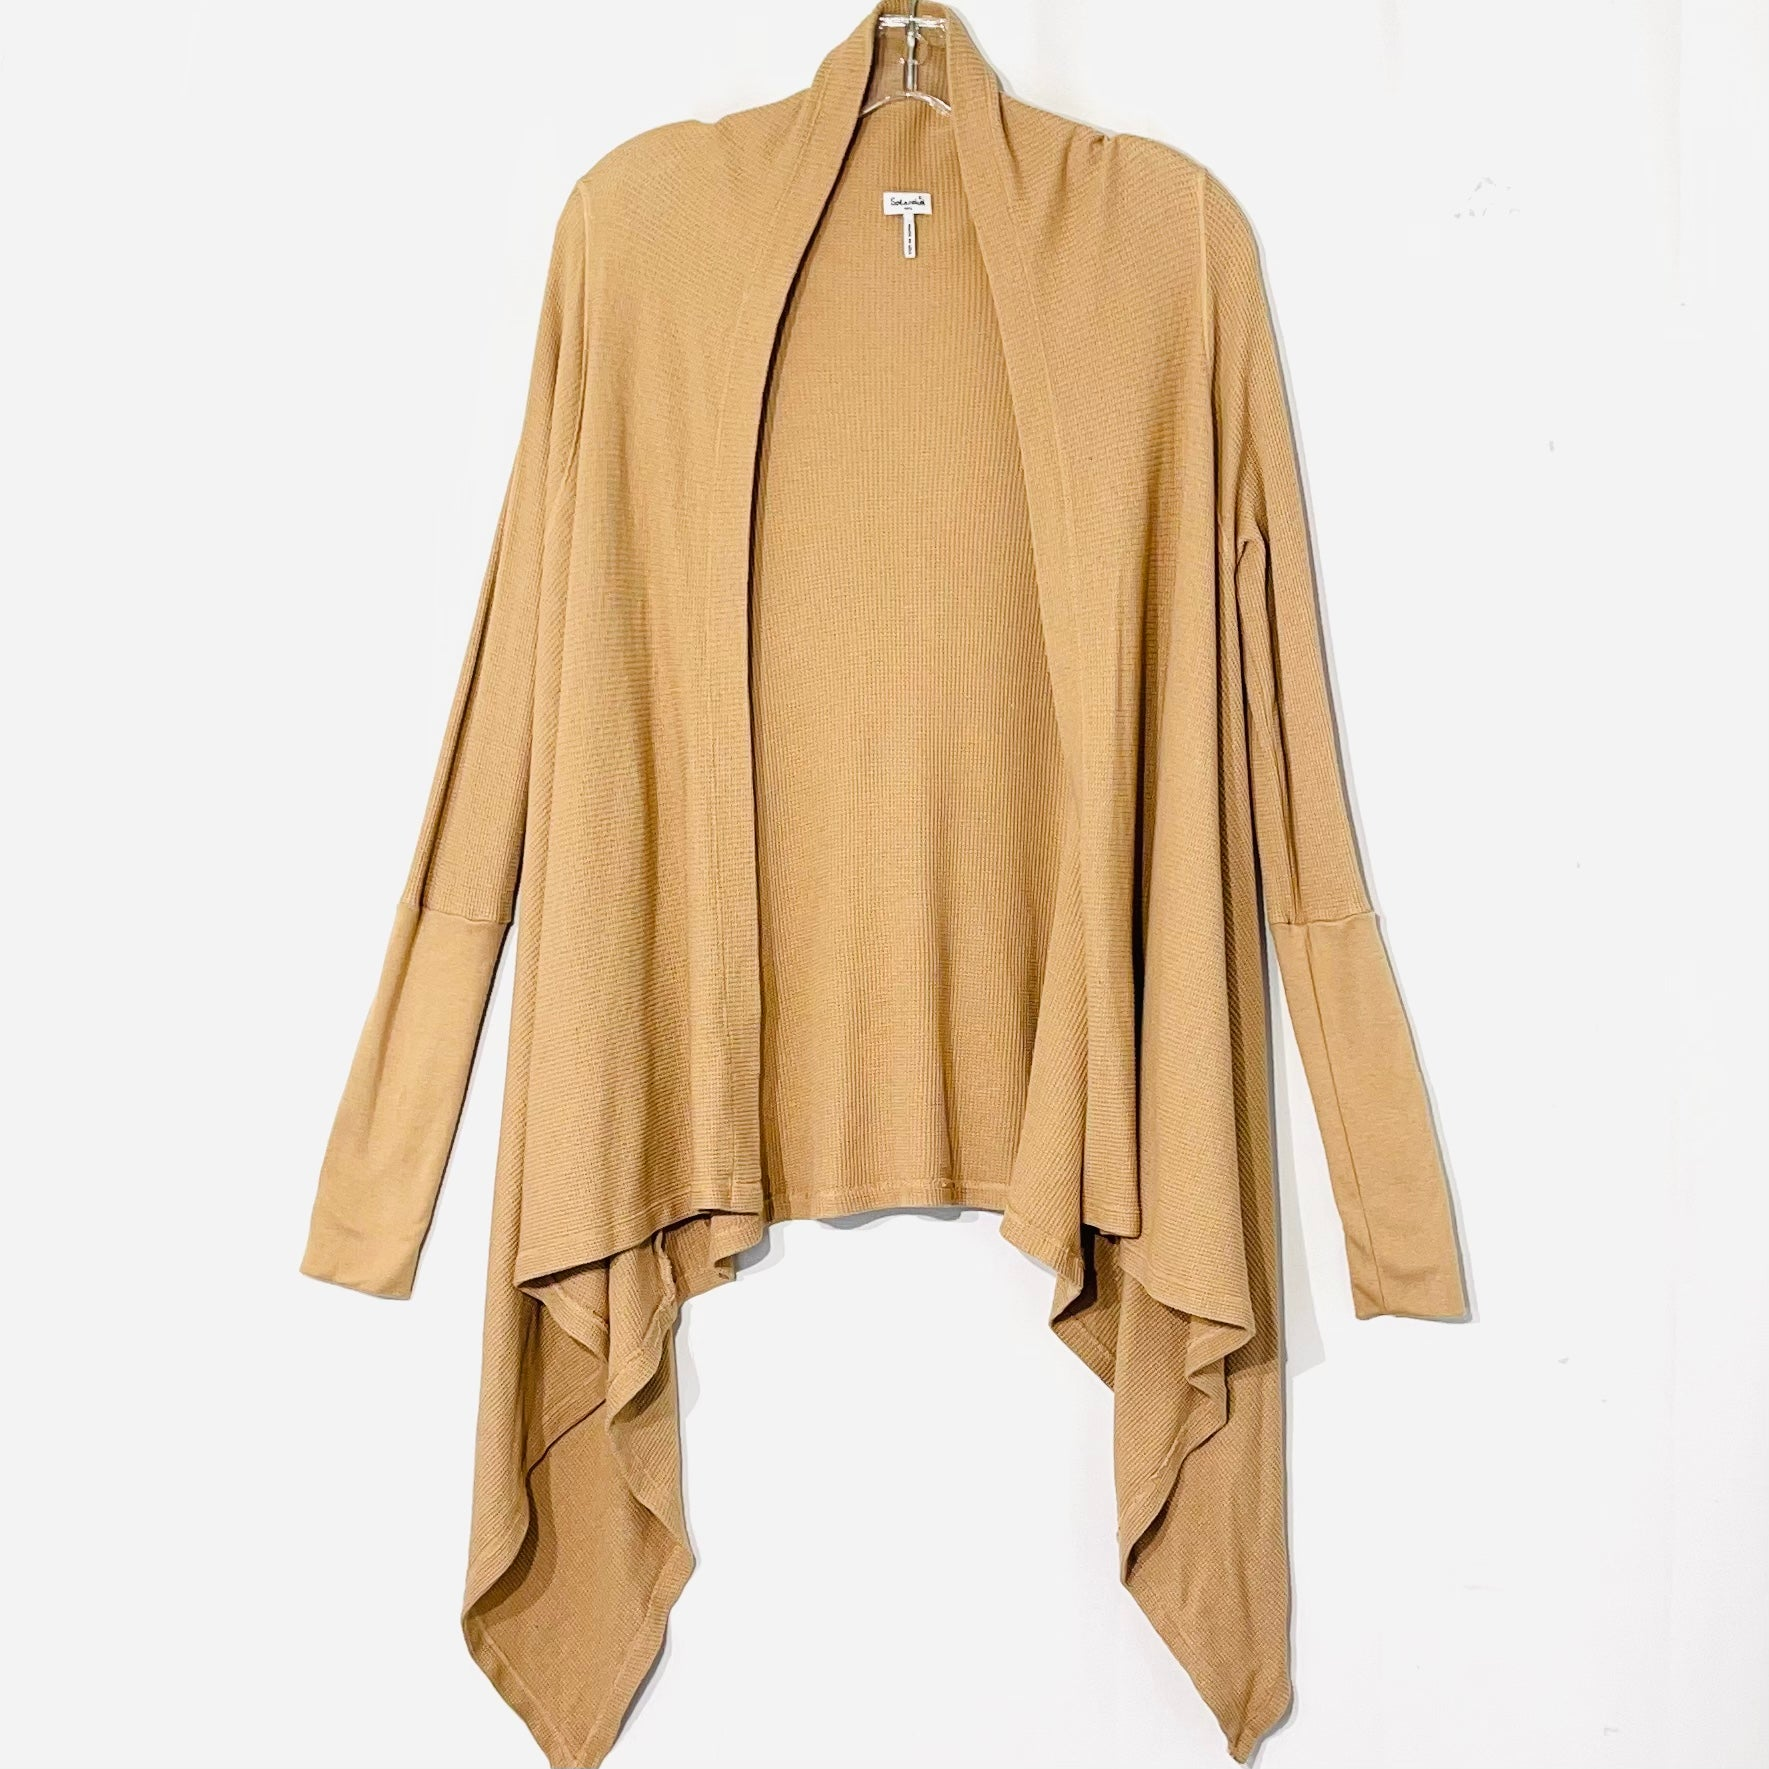 Primary Photo - BRAND: SPLENDID <BR>STYLE: SWEATER CARDIGAN LIGHTWEIGHT <BR>COLOR: TAN <BR>SIZE: M <BR>SKU: 262-26275-75707